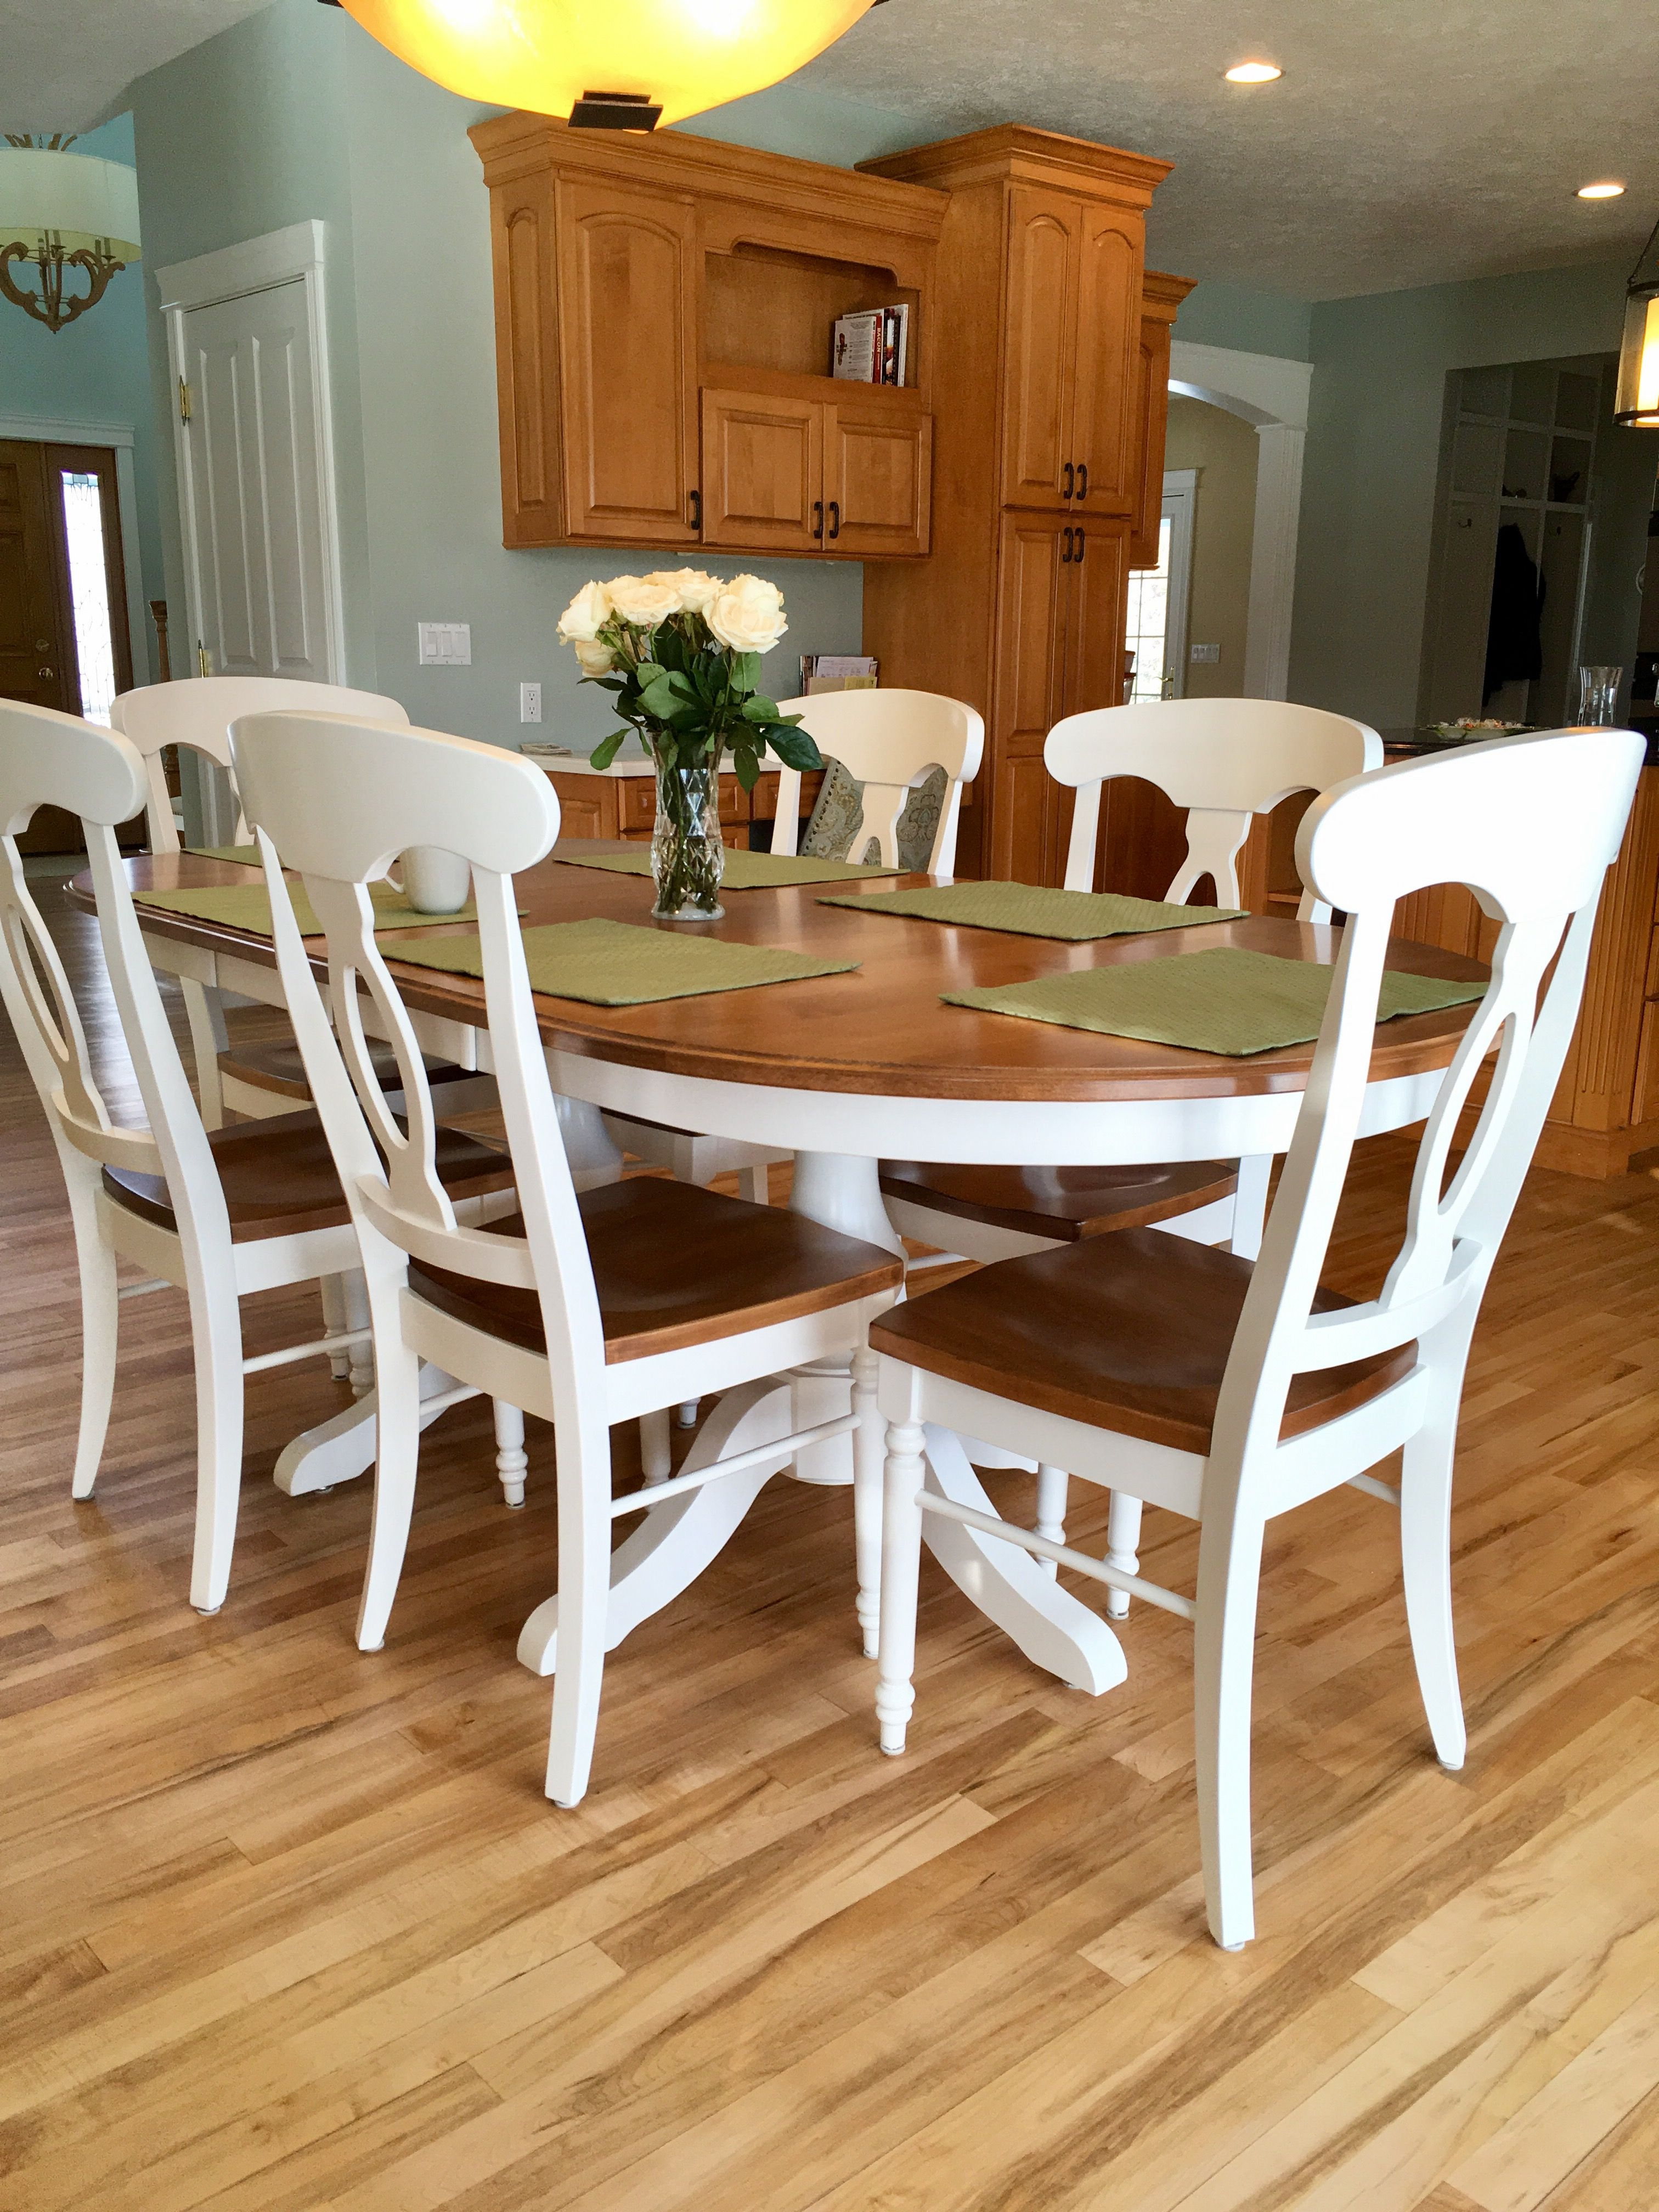 Table: Palettes by Winesburg. Paint color is Comfort Gray by Sherwin Williams